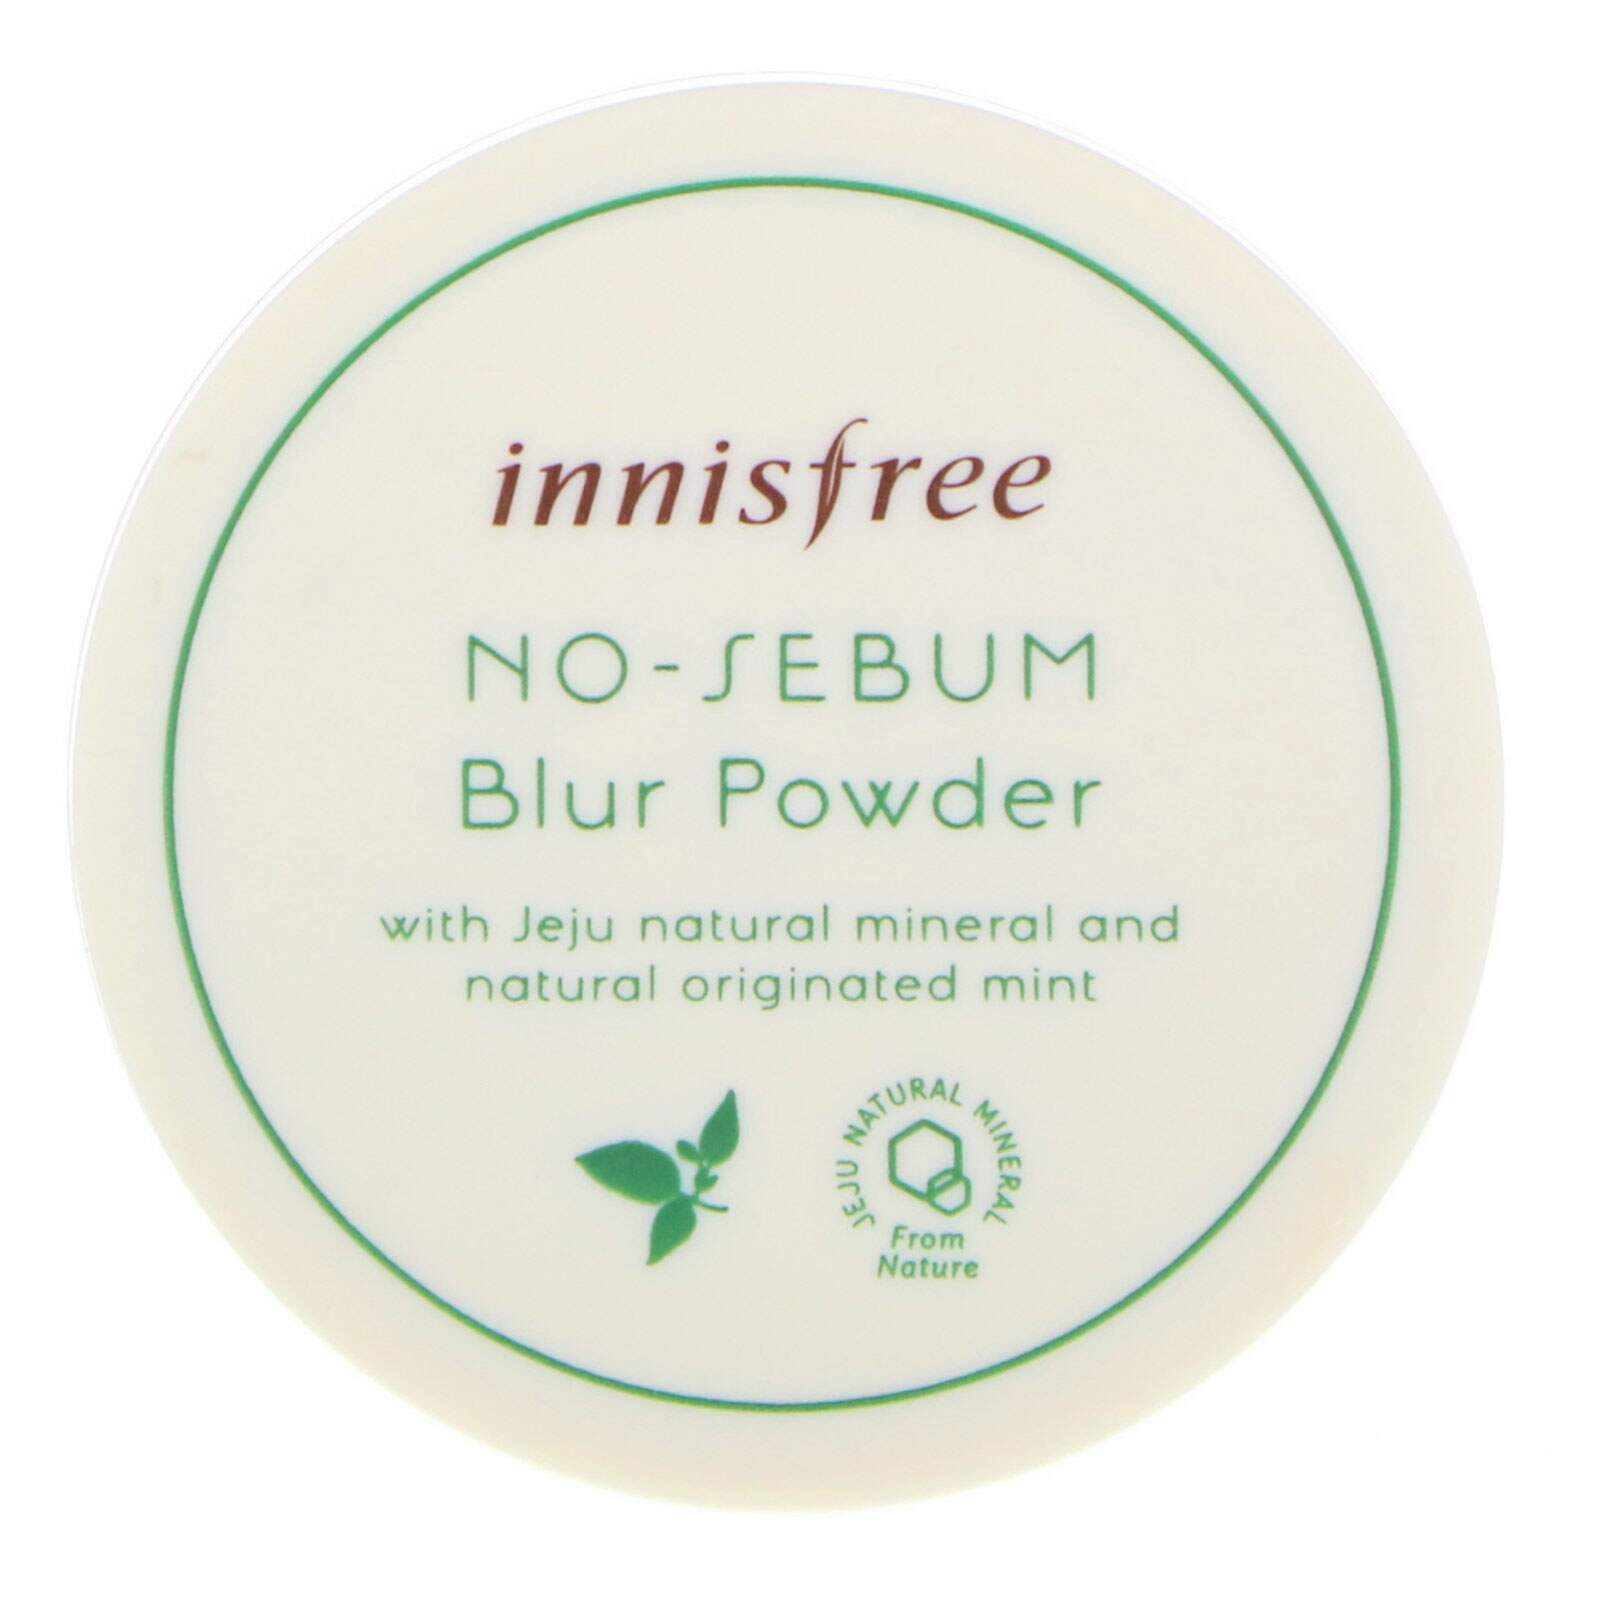 PÓ FACIAL NO SEBUM BLUR MINERAL POWDER INNISFREE 5g